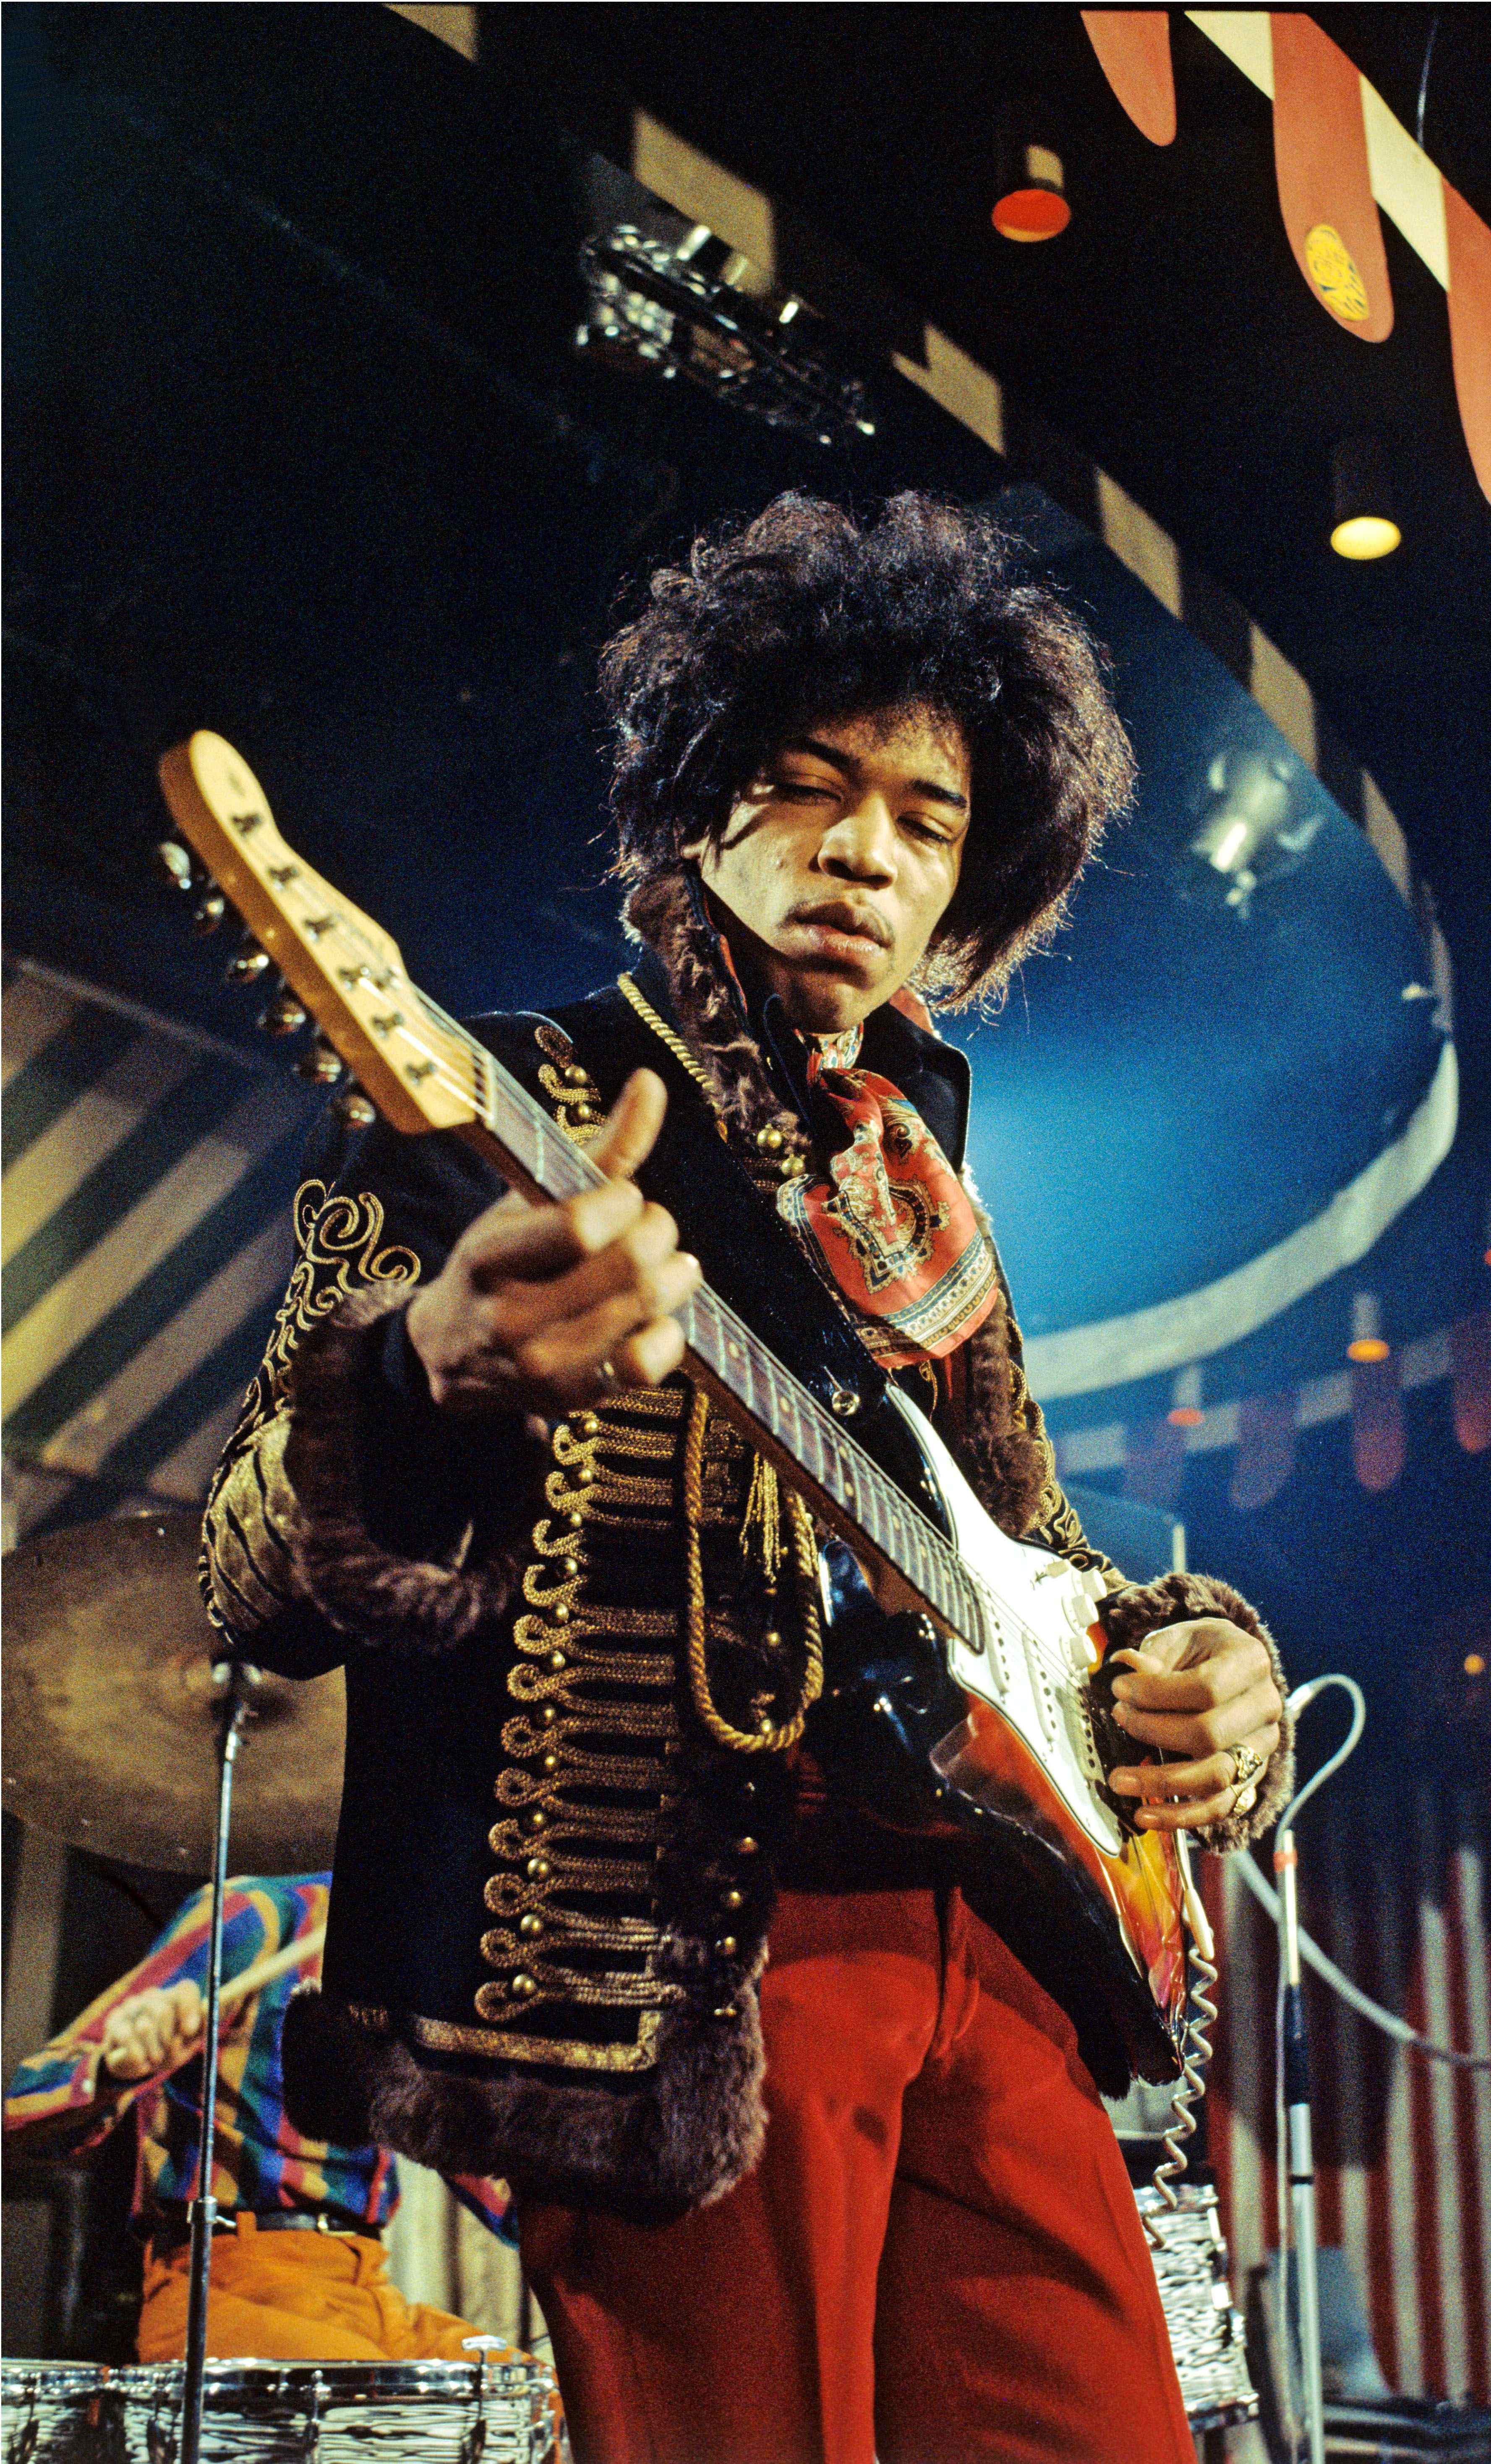 Jimi Hendrix News, Pictures, and Videos